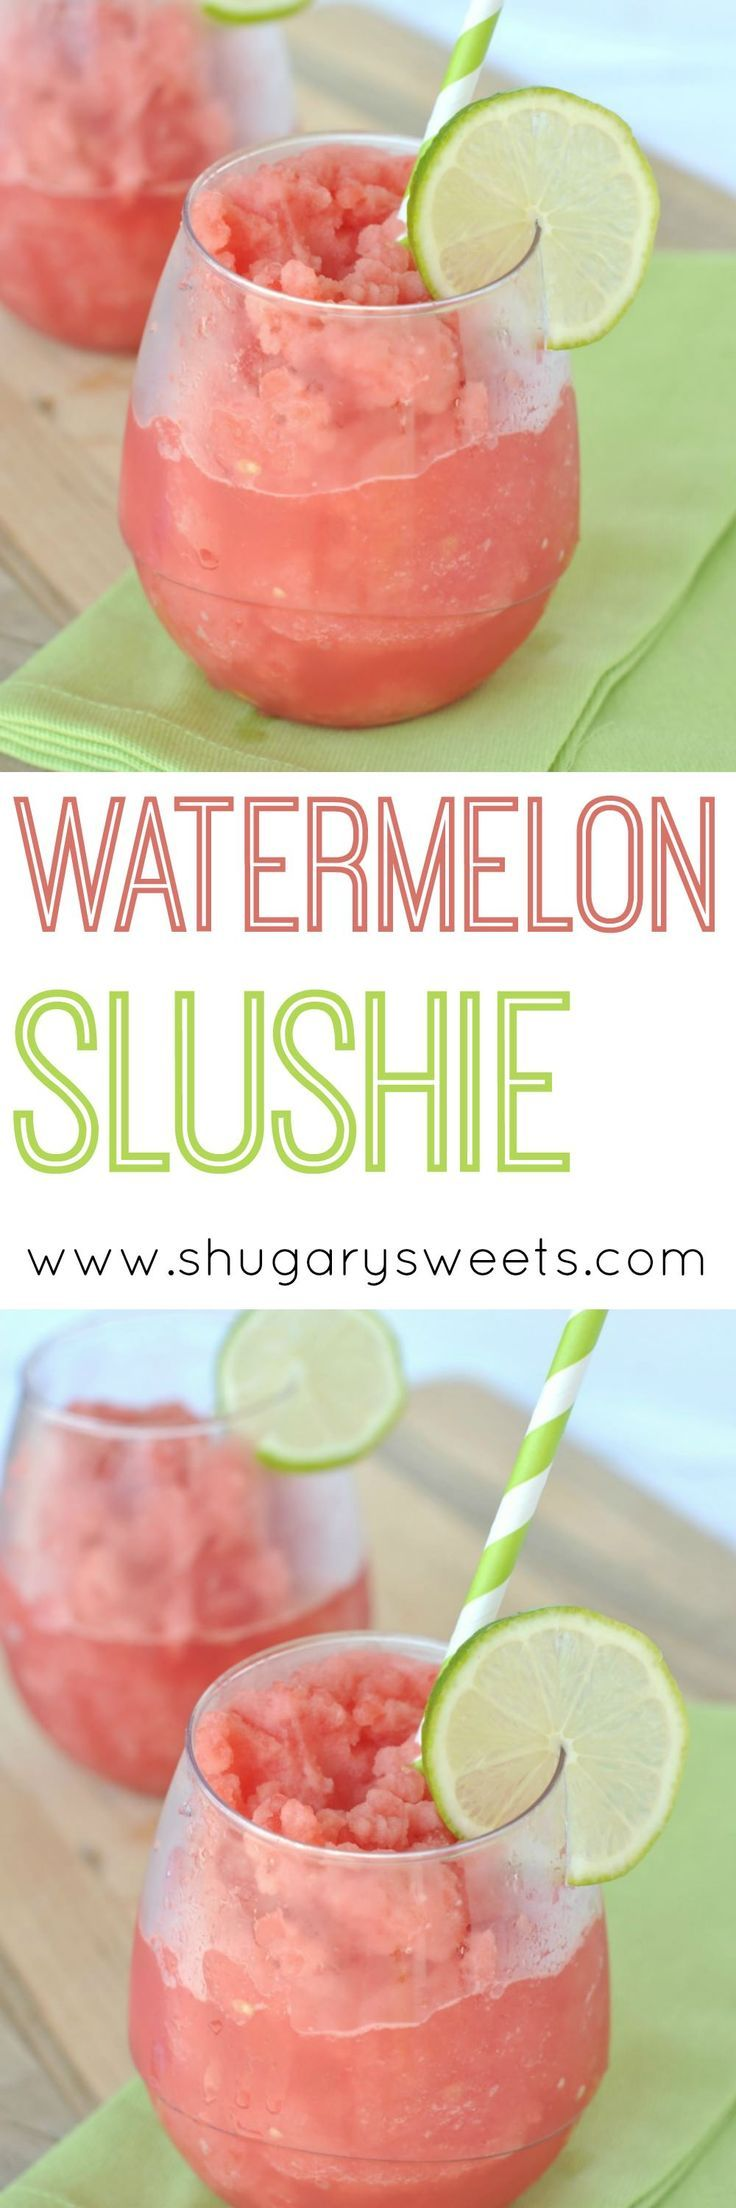 A quick, refreshing slush made using frozen watermelon, lime juice, and water!